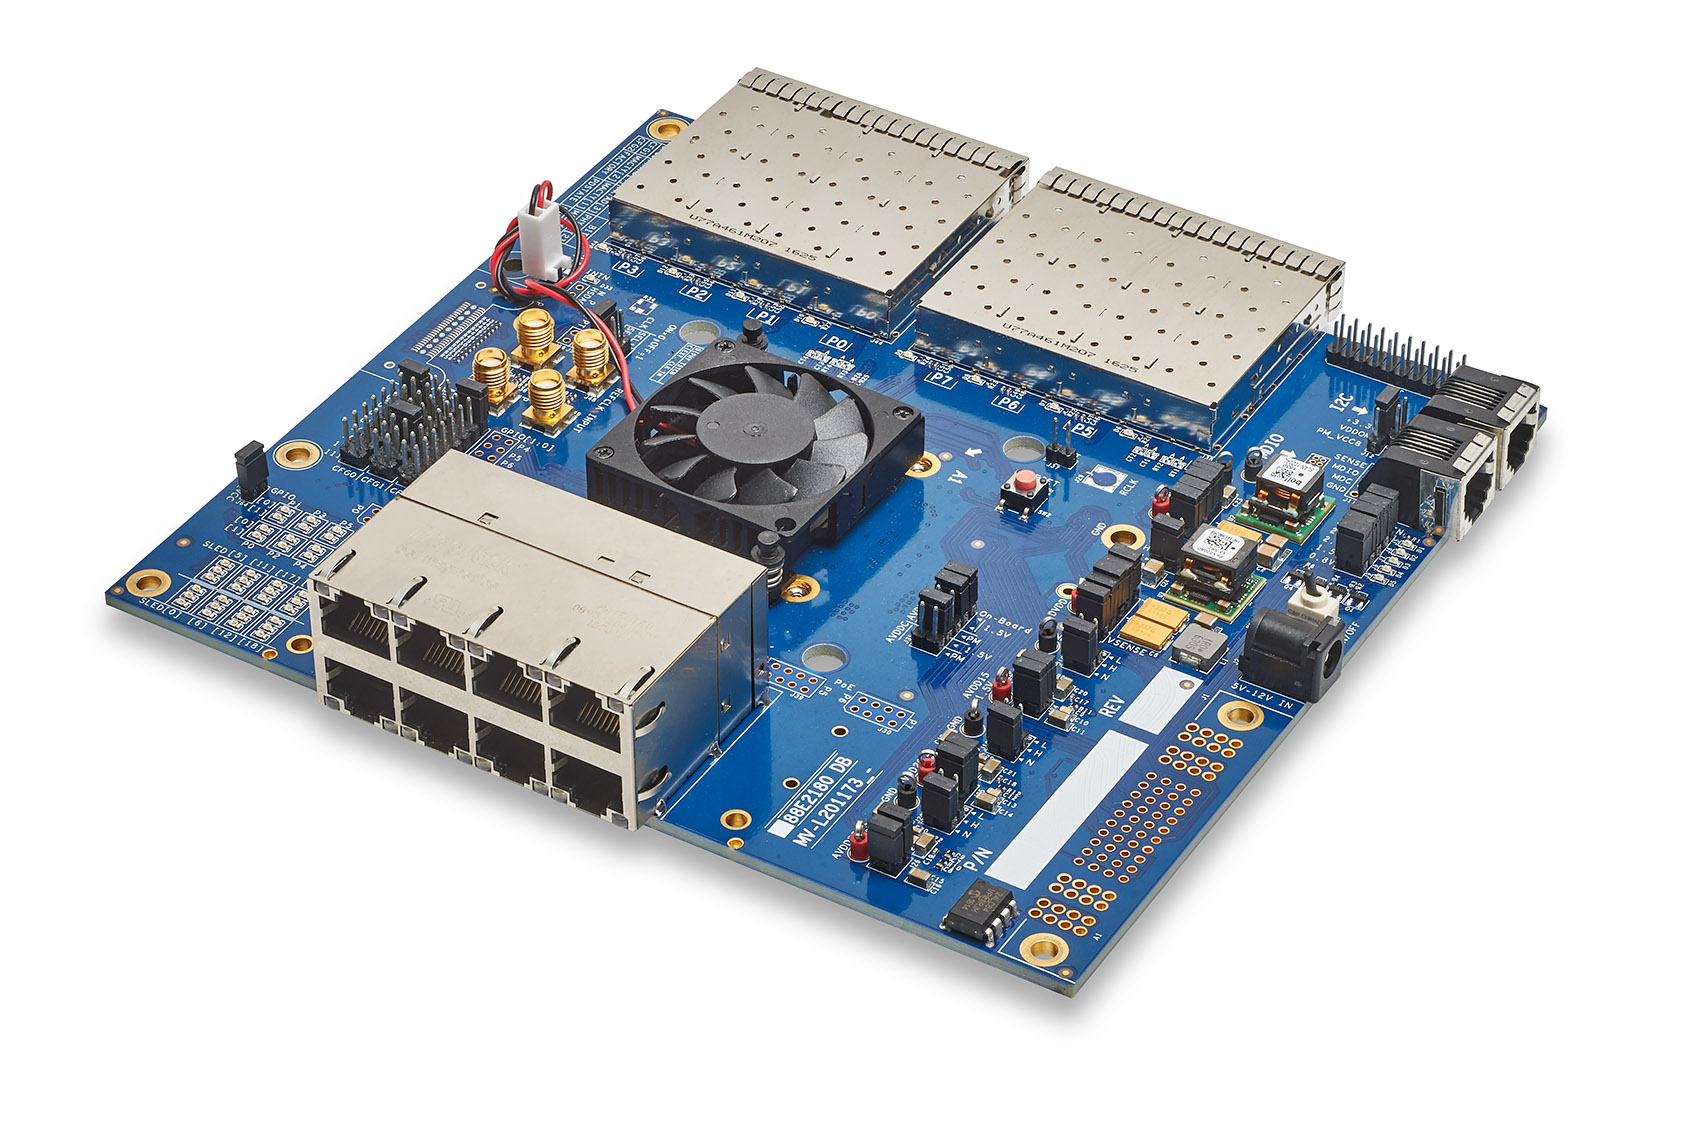 Marvell's Alaska® M 88E2180 Gigabit Ethernet Development Board